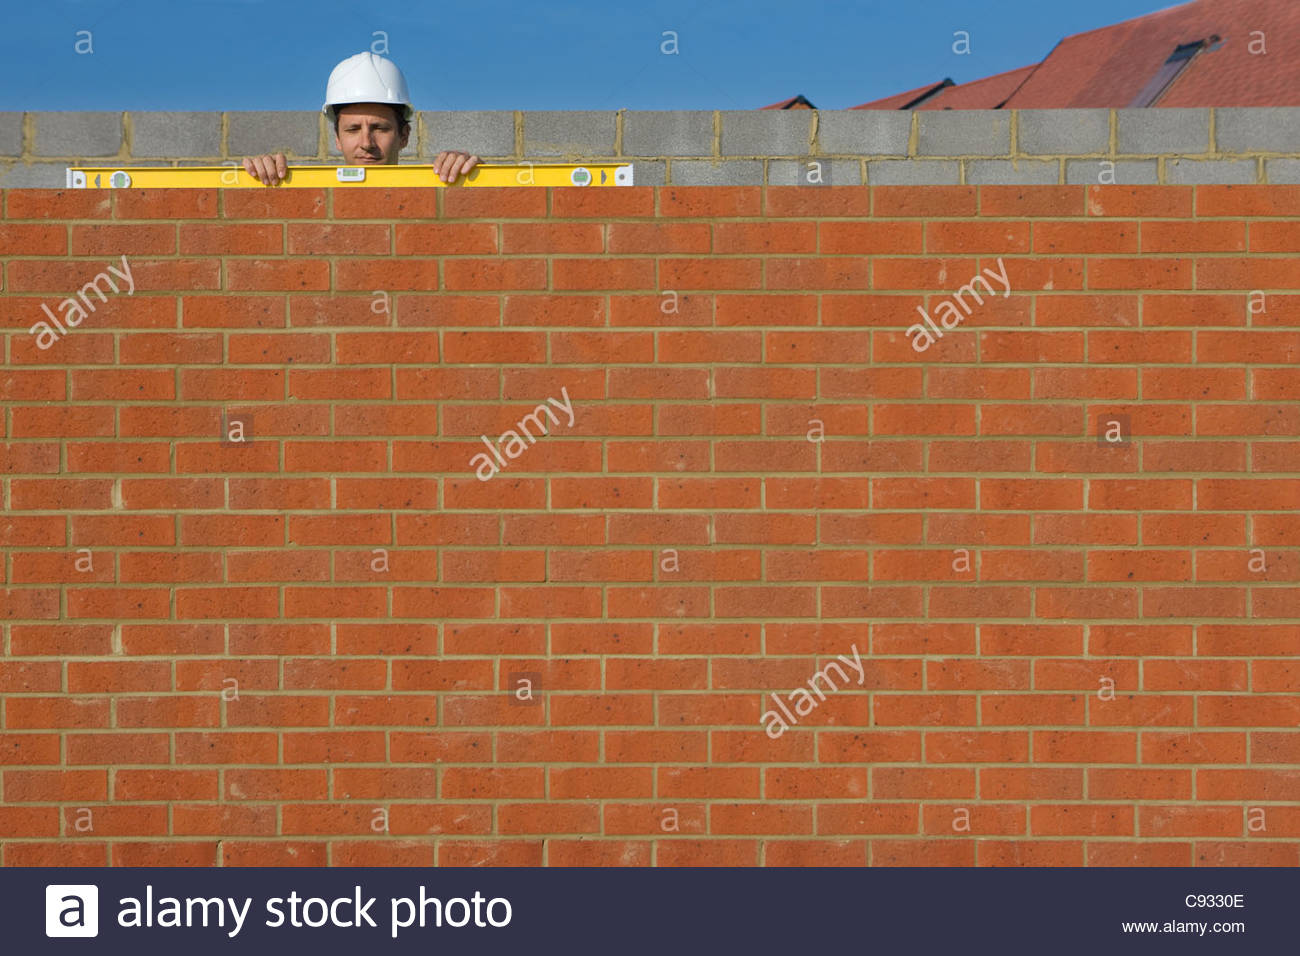 Bricklayer holding level tool on brick wall - Stock Image